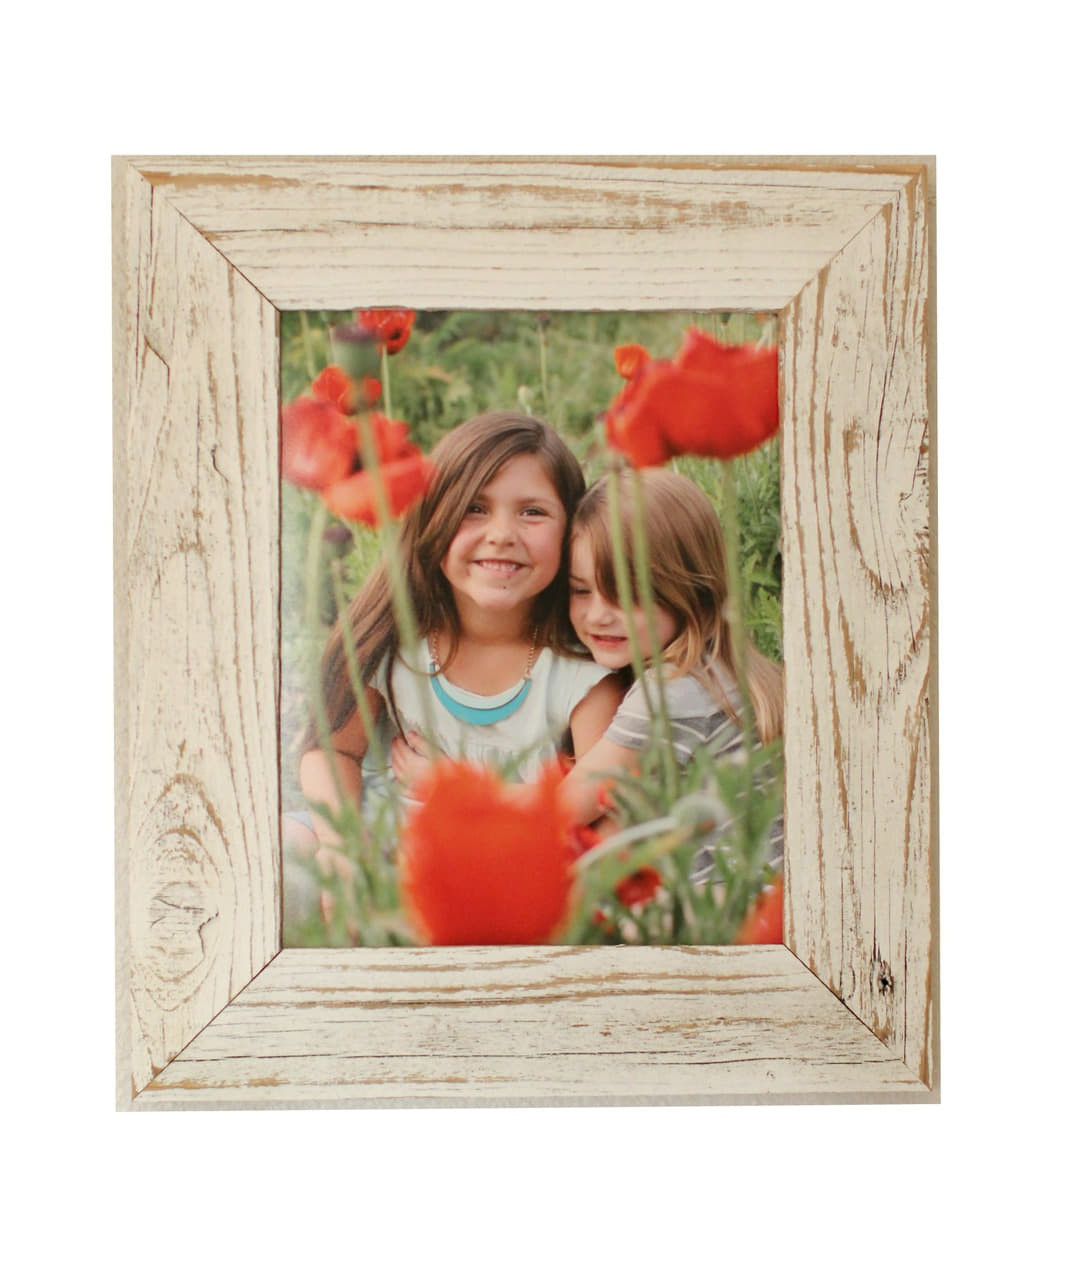 18x24 Antique White Barnwood Picture Frame | Whitewashed Reclaimed Wood